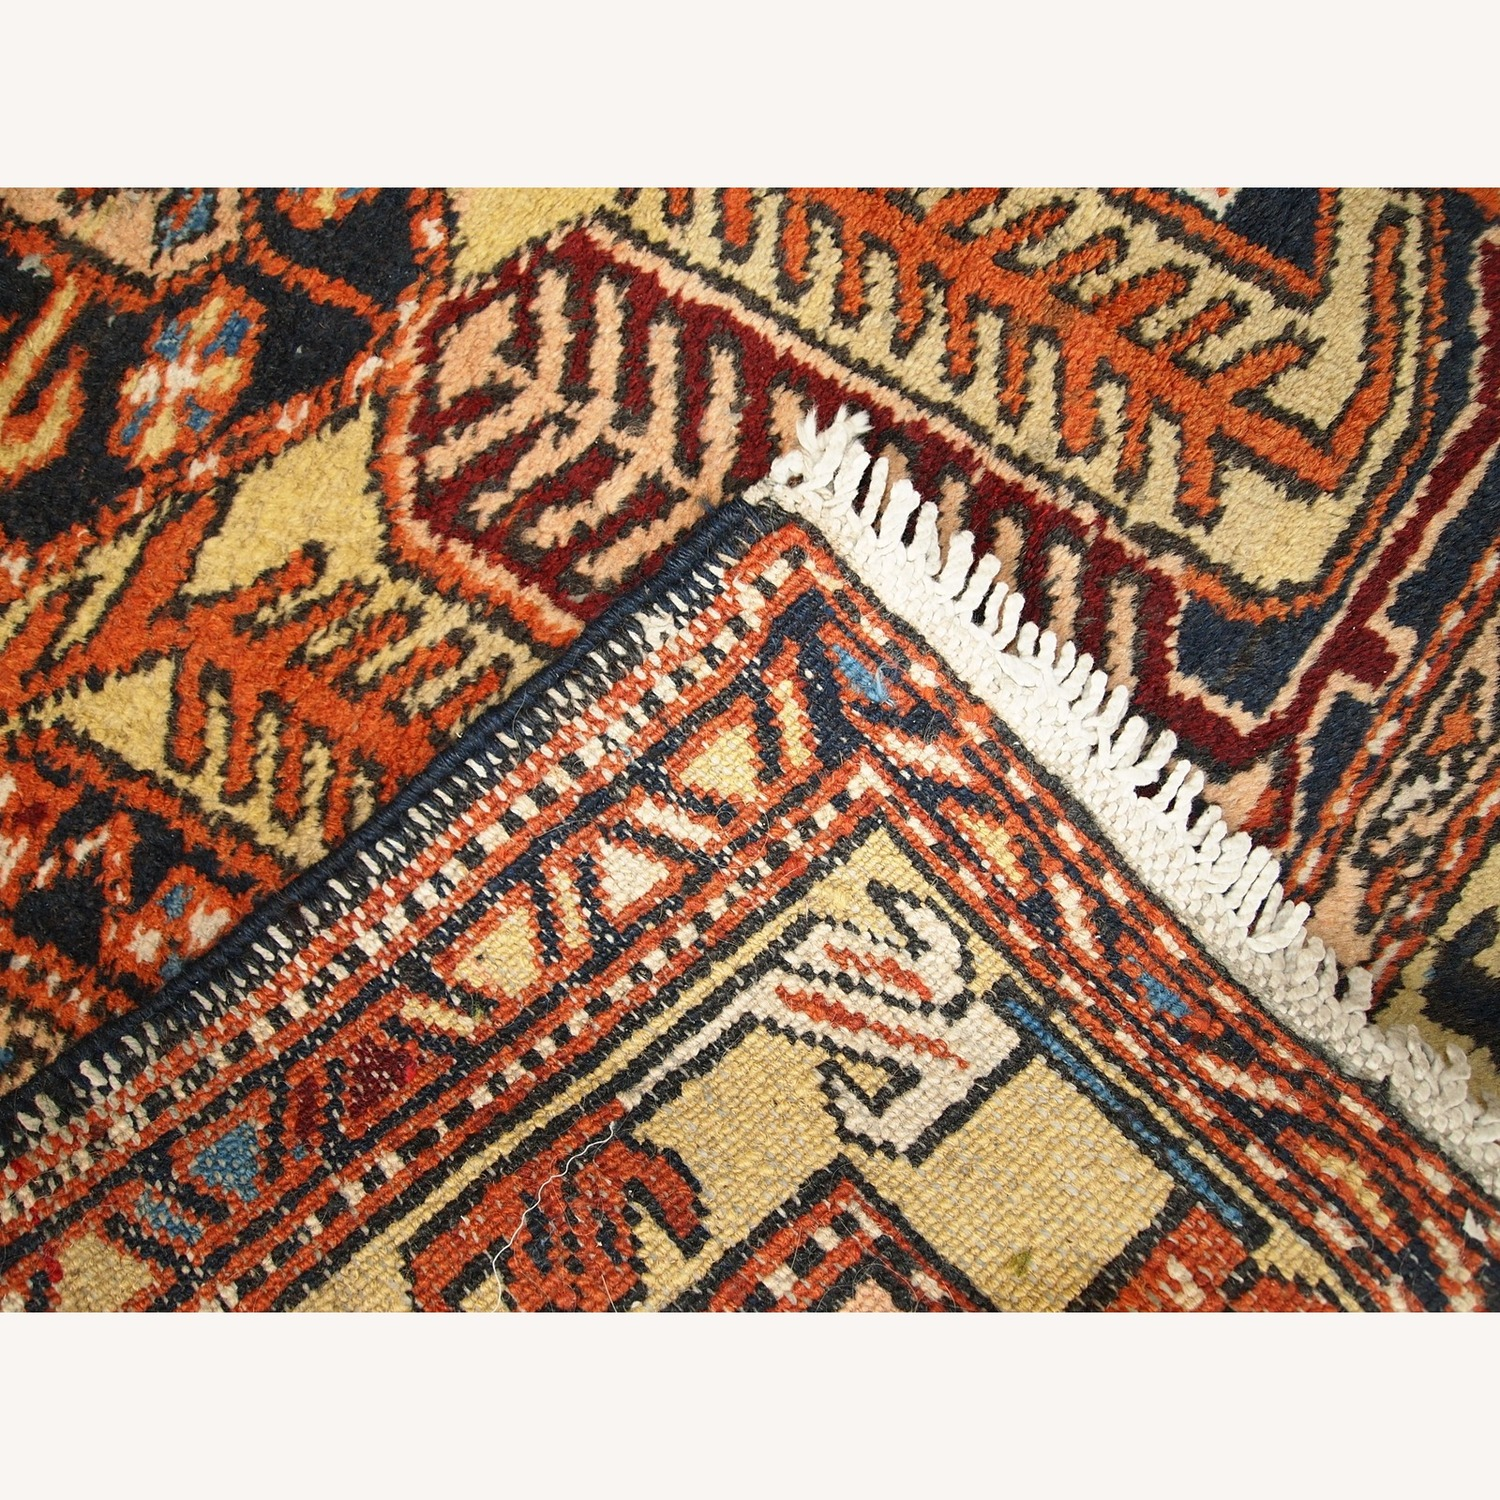 Handmade Antique Persian Heriz Runner - image-10